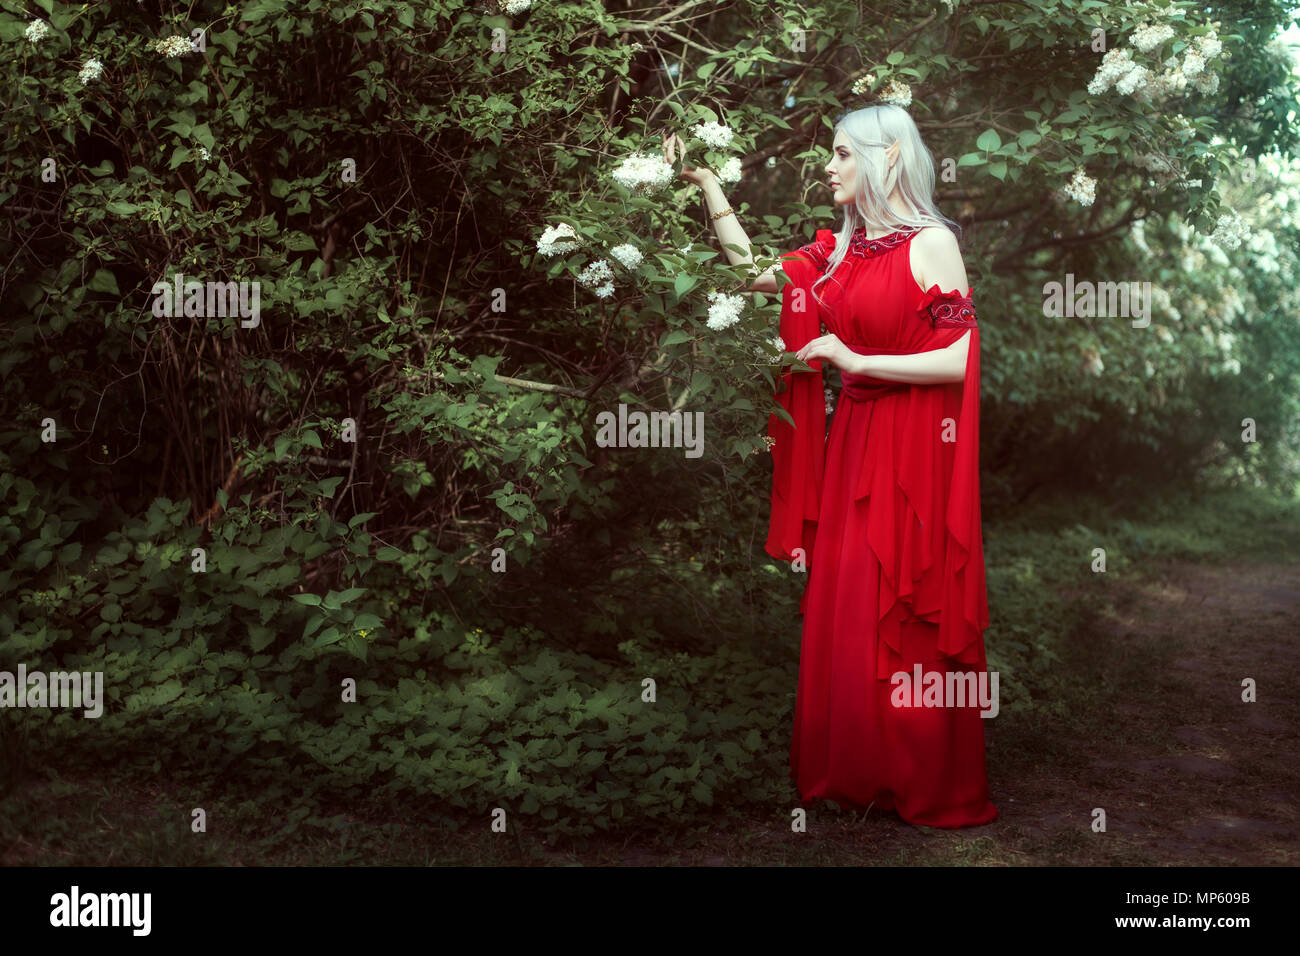 Young elf woman in a red dress in a fairy forest. - Stock Image